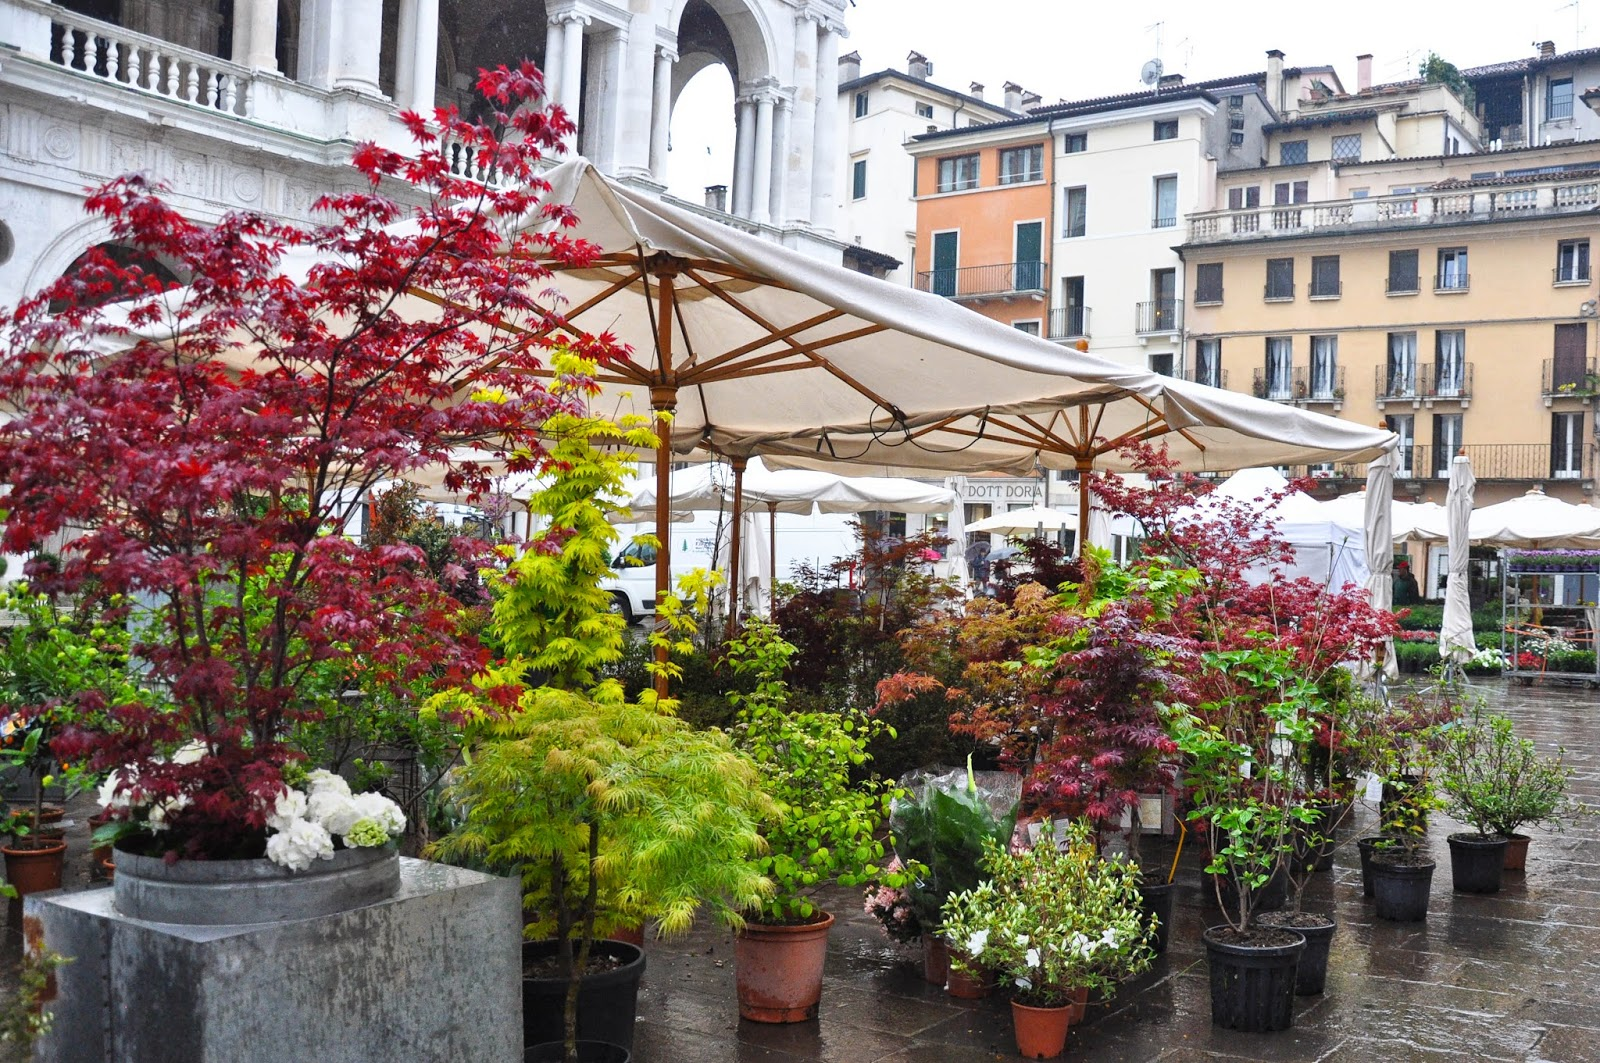 Potted plants at the Flower Exhibition at Piazza dei Signori in Vicenza, Italy